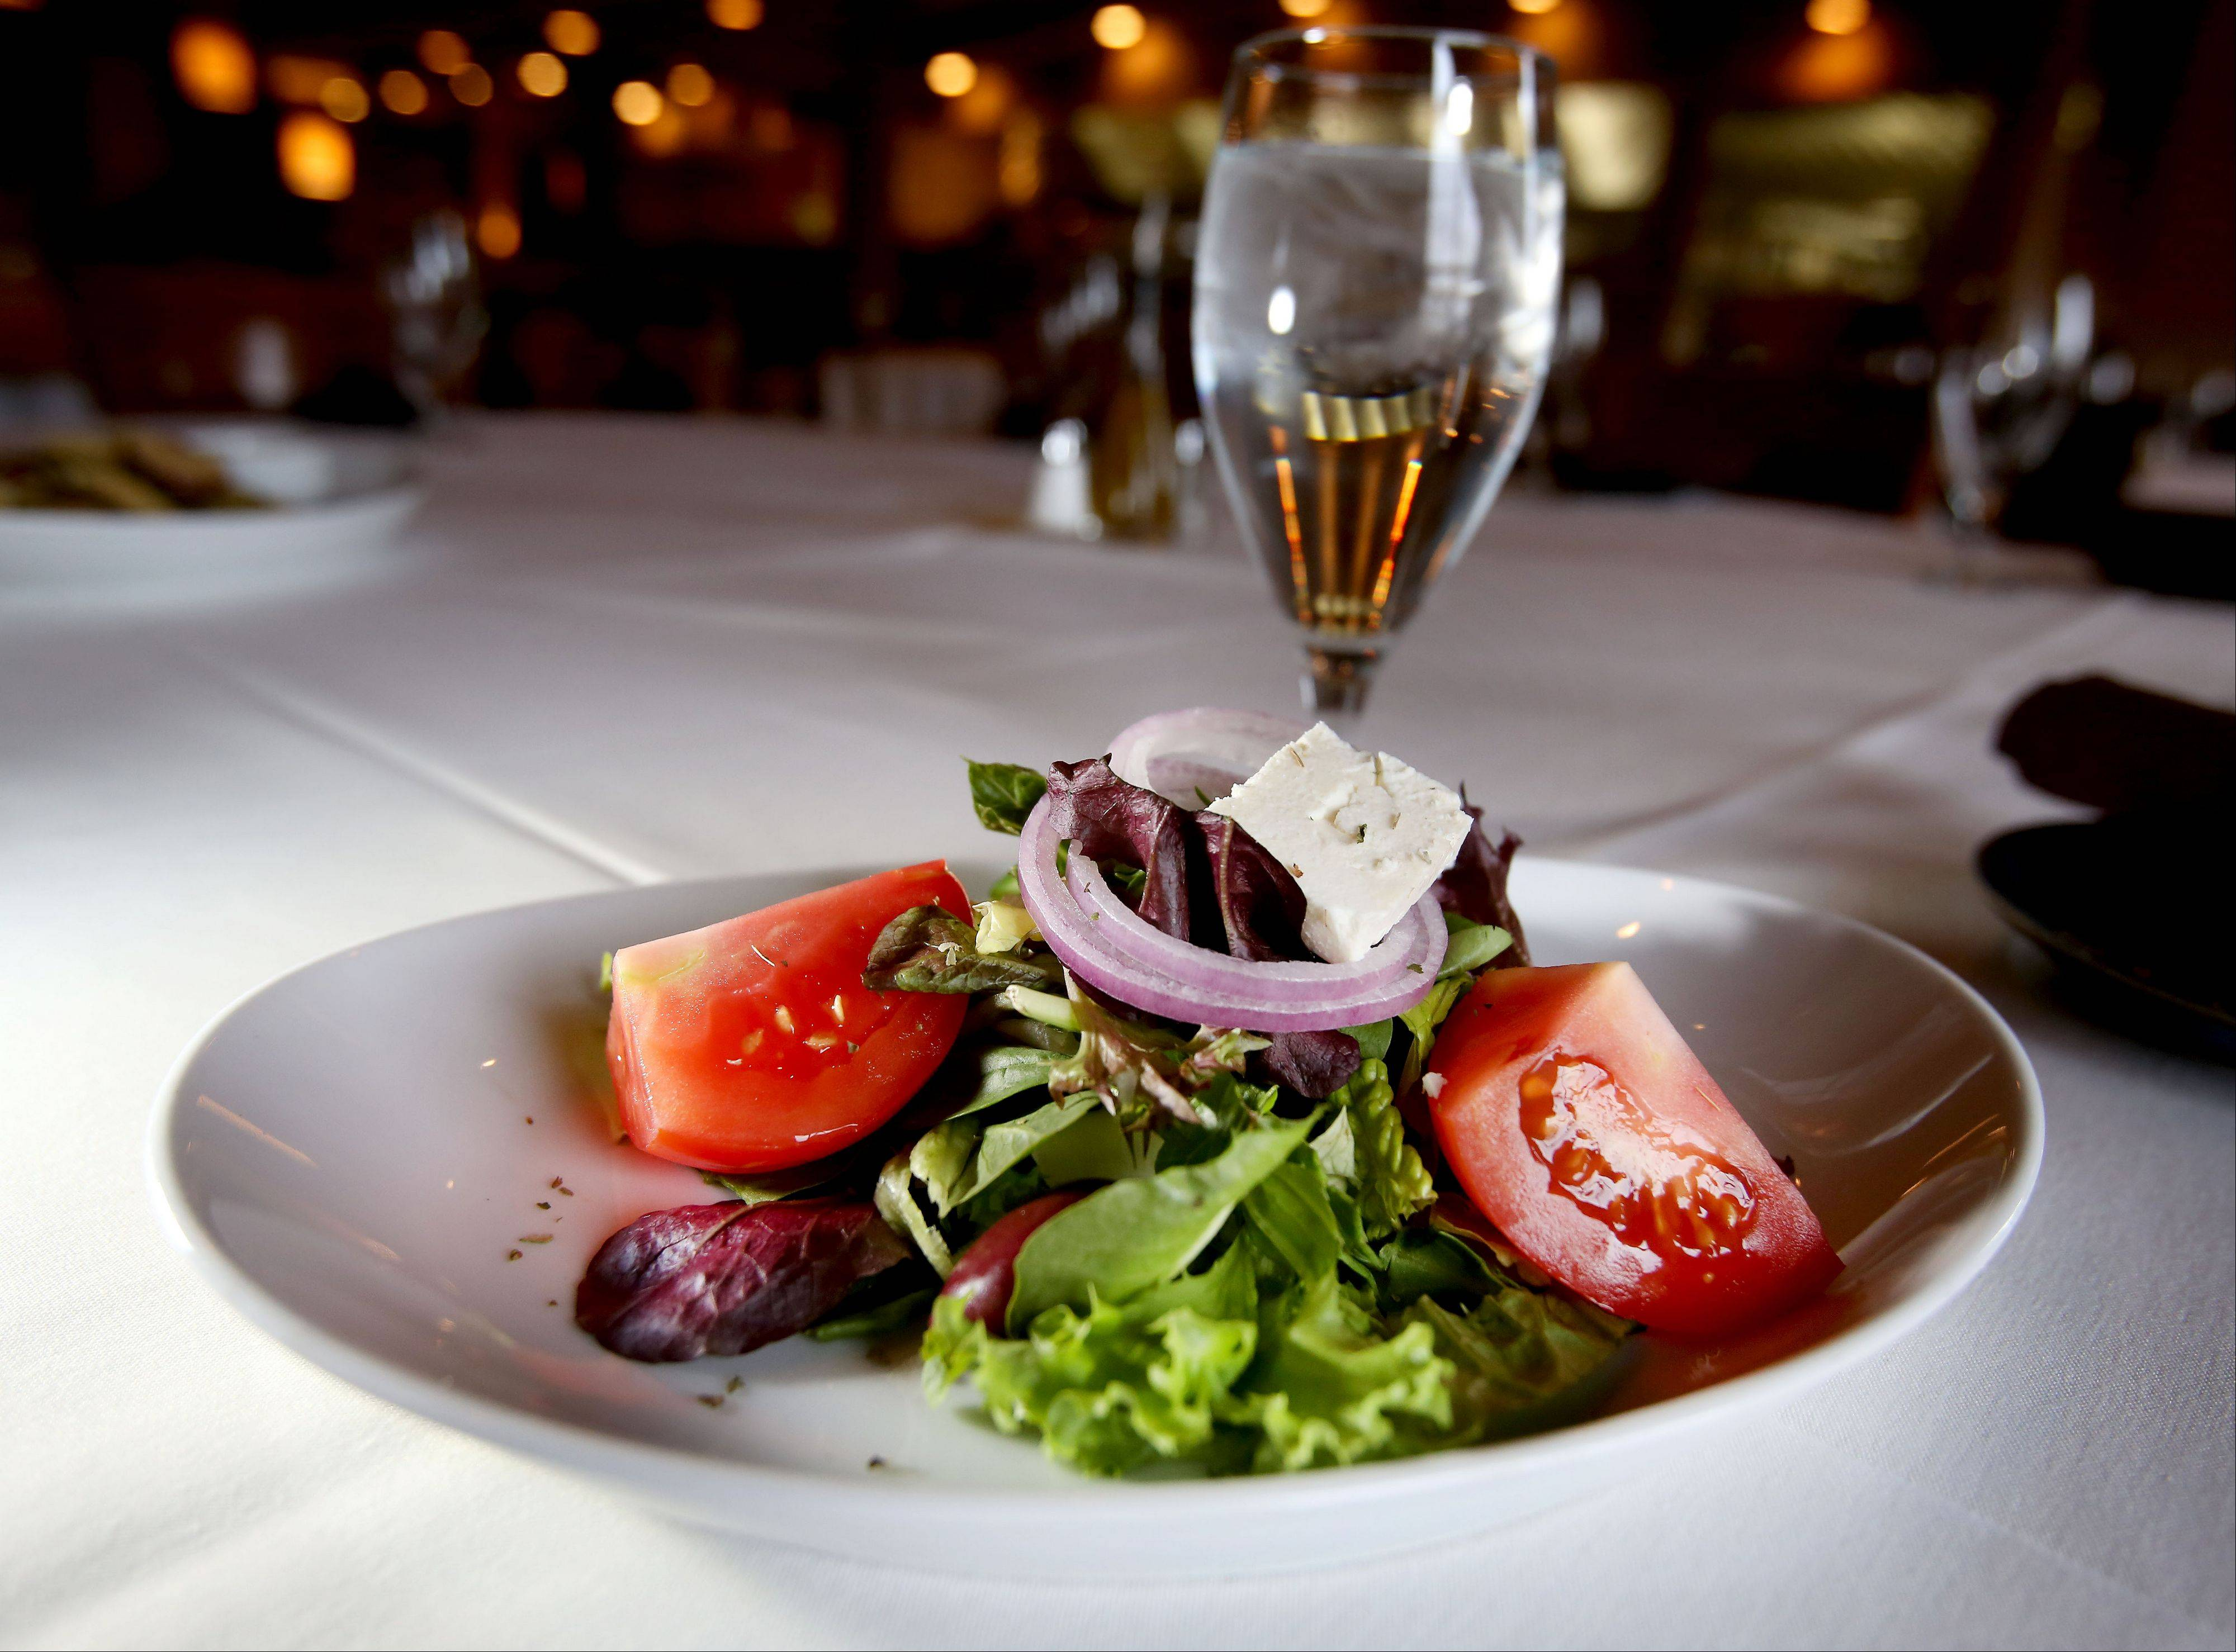 A Greek salad starts lunch or dinner off on a traditional note at Basil's Greek Dining in Aurora.